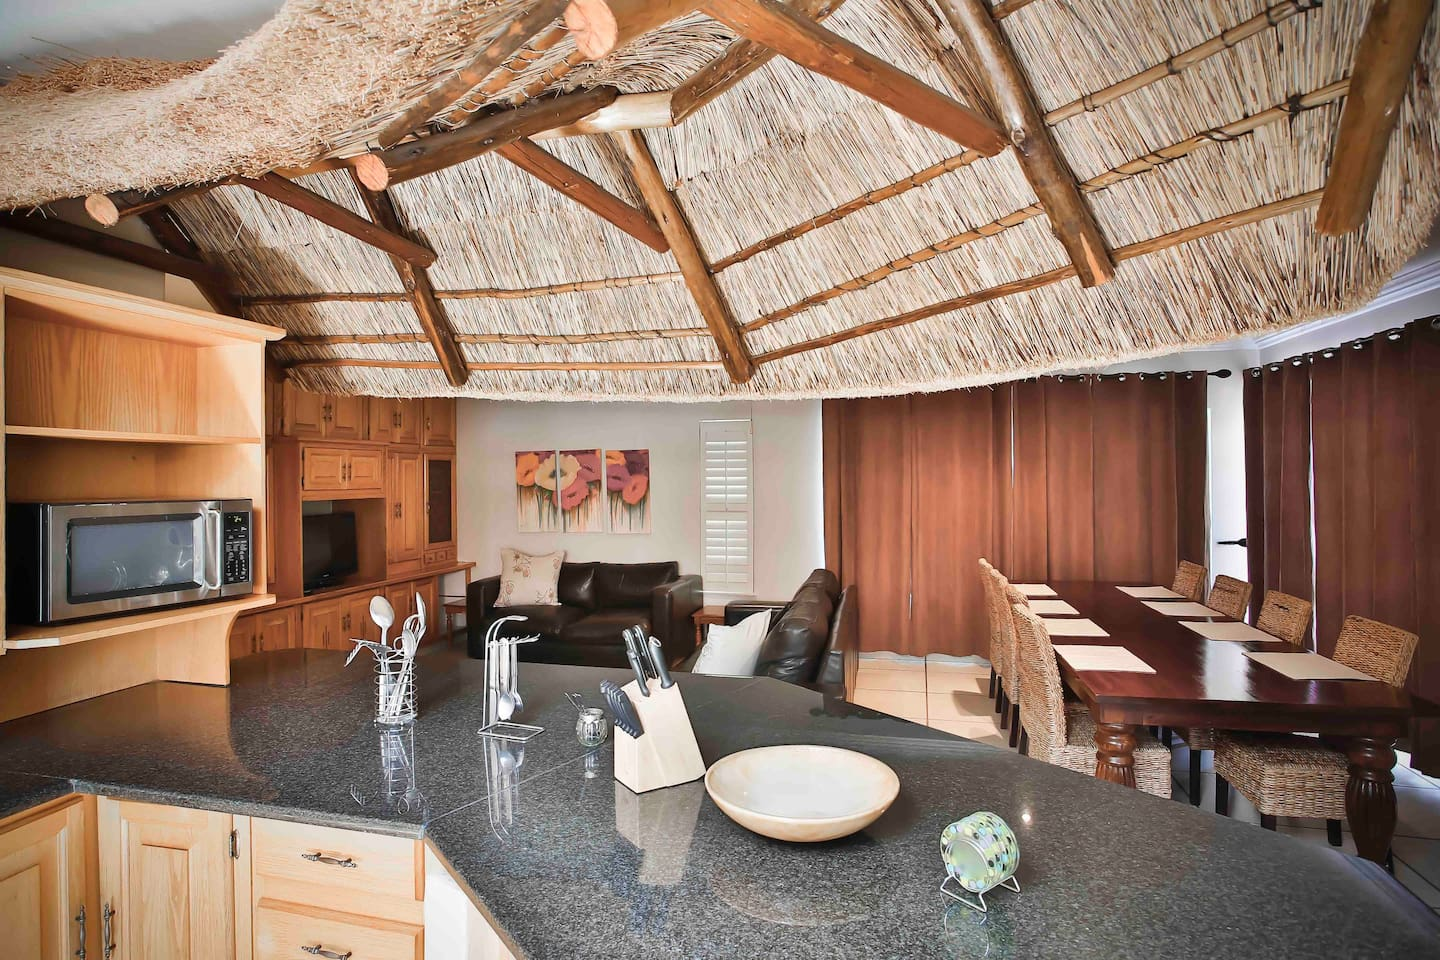 Beautiful Living area with a 8 seater dining table, leather lounge suite and a thatch kitchen counter.